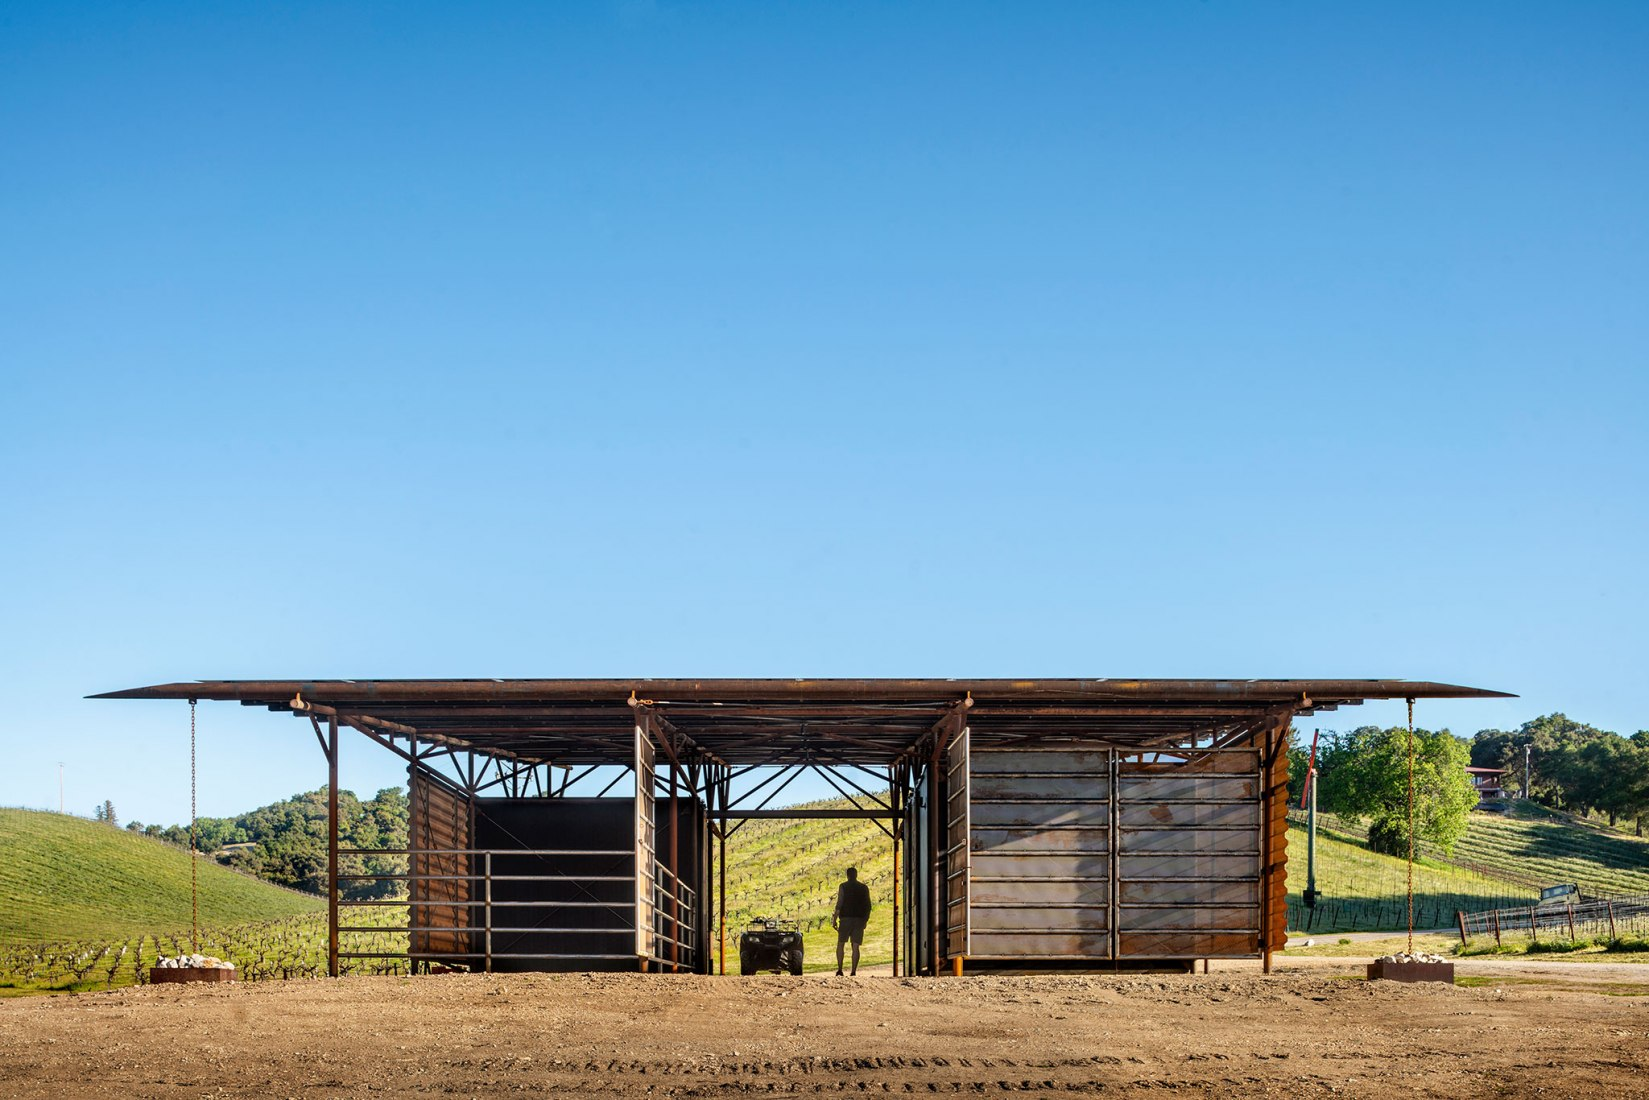 A half pipe steel gutter directs rainfall to chain downspouts and cistern catch basins. Saxum Vineyard Equipment Barn by Clayton & Little Architects. Photograph by Casey Dunn